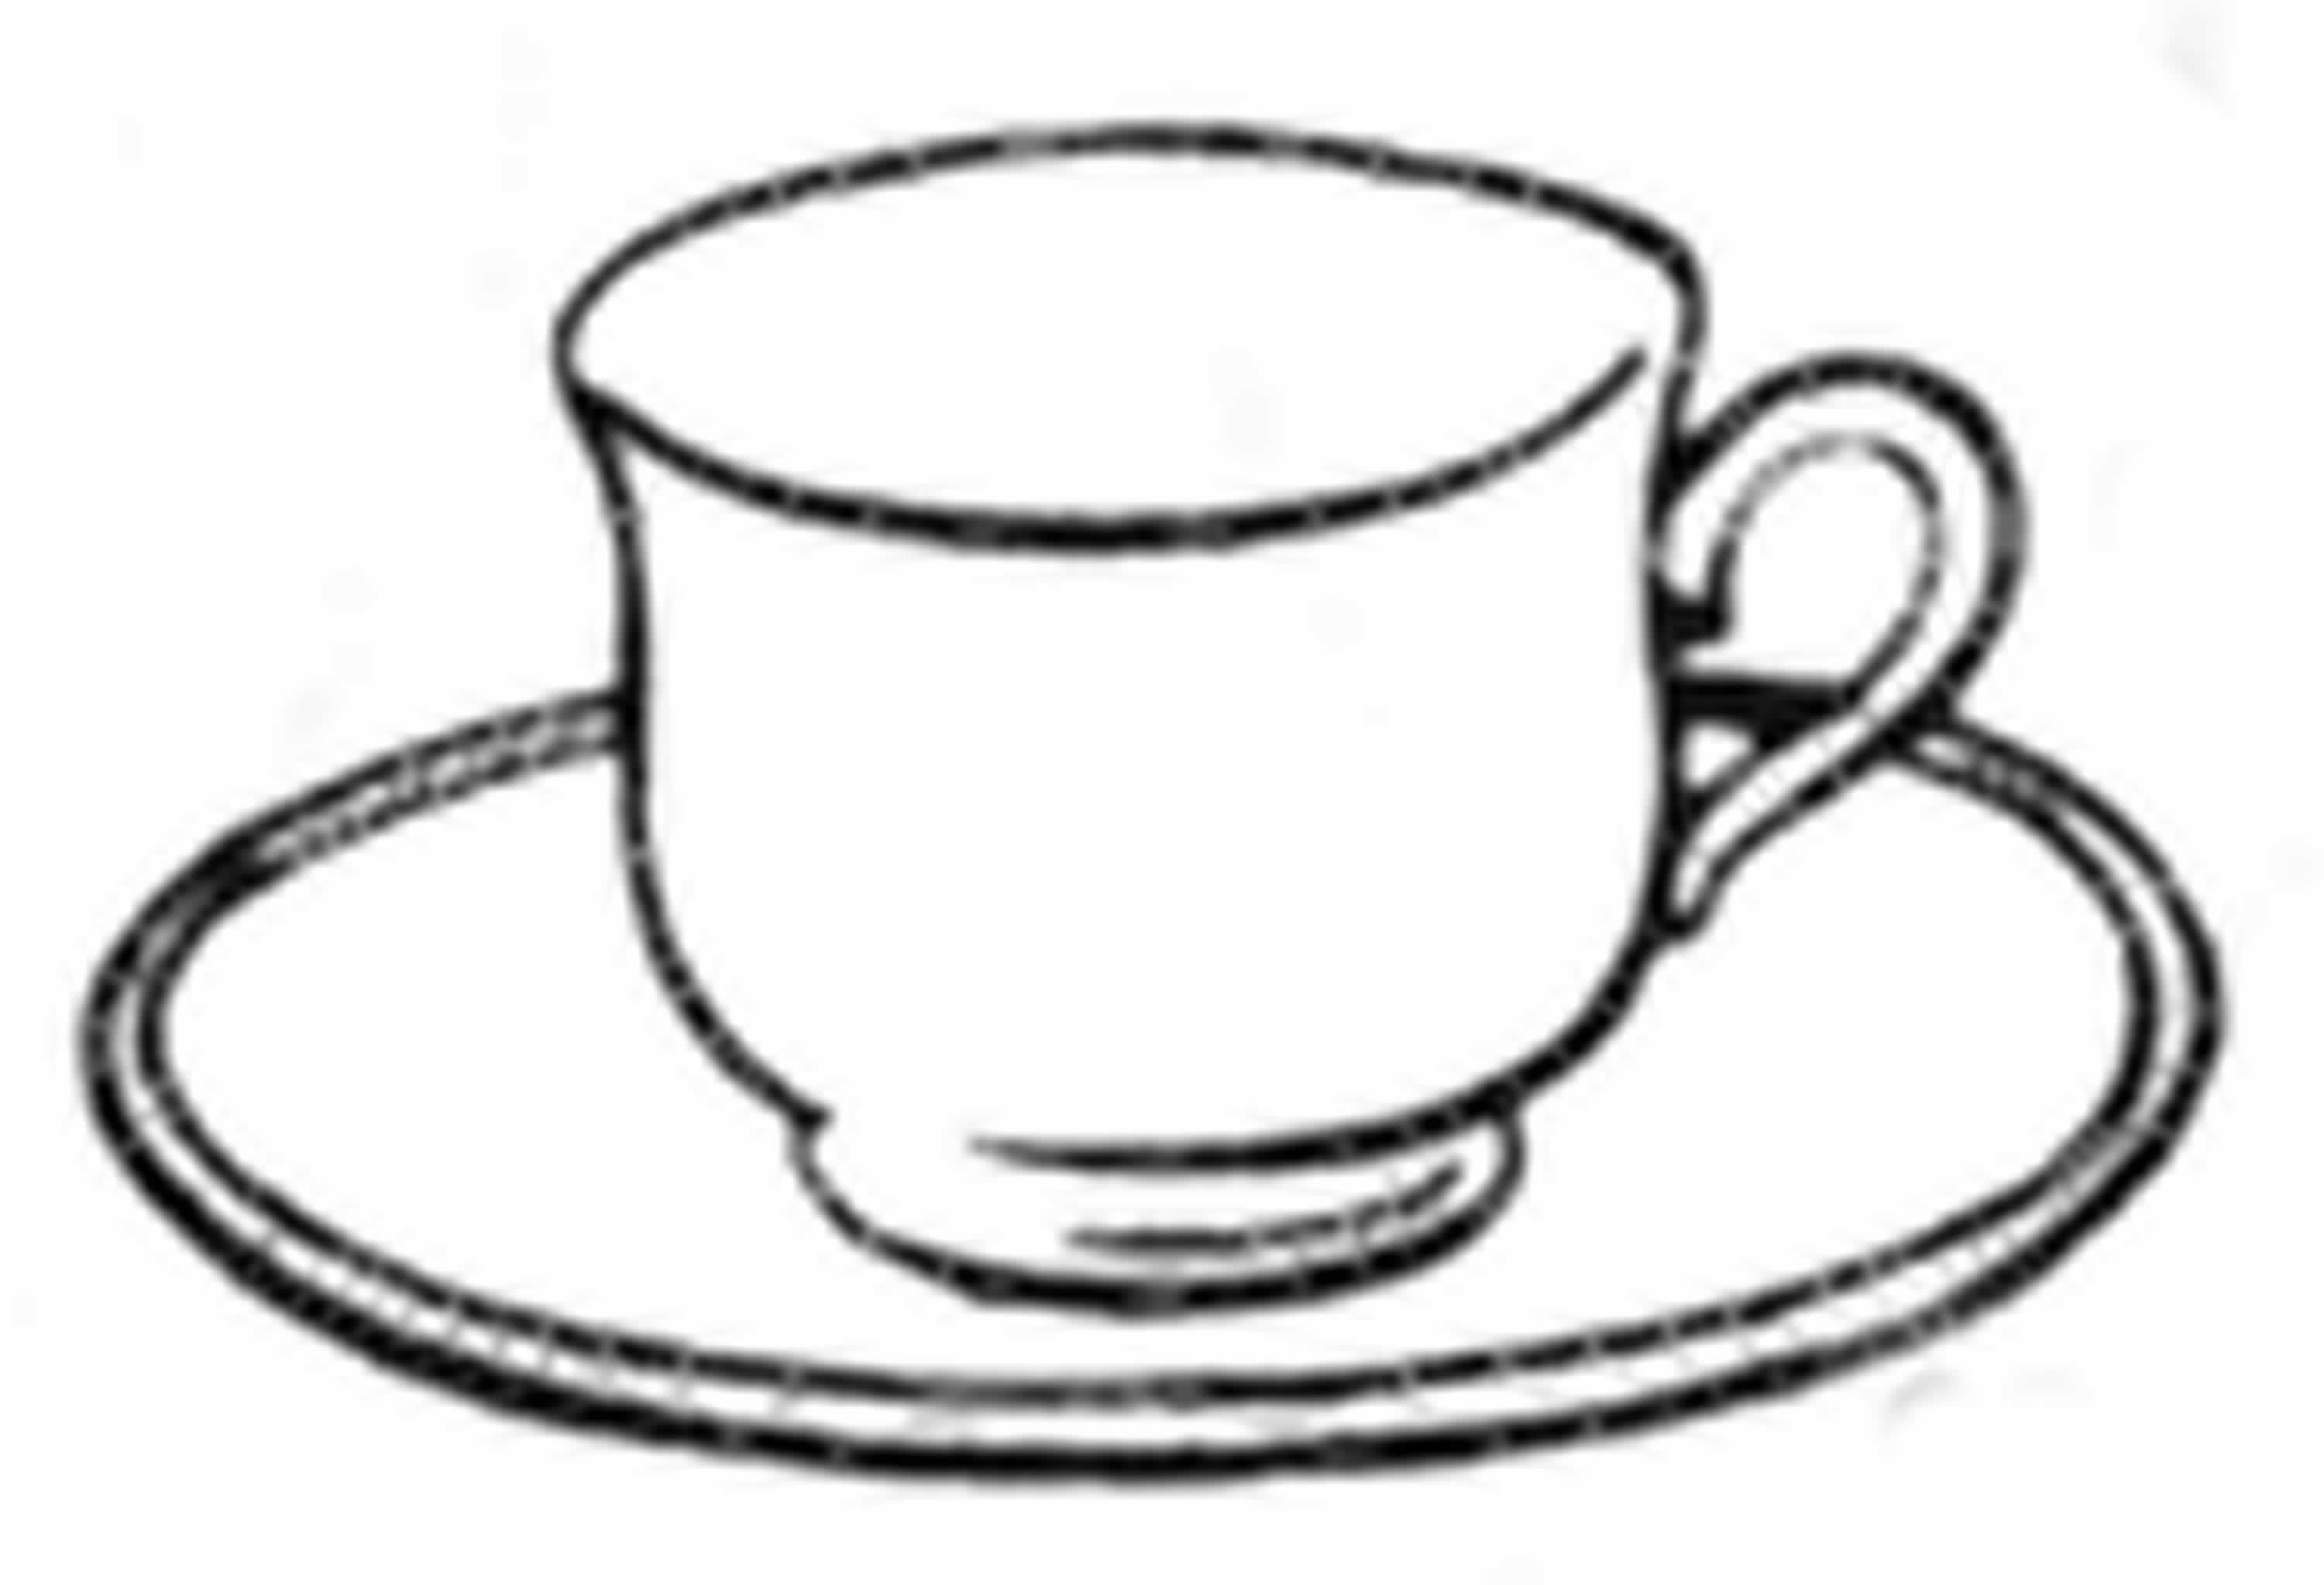 3000x2046 Dutch Weave Footed Cup Amp Saucer Set By Noritake Replacements, Ltd.